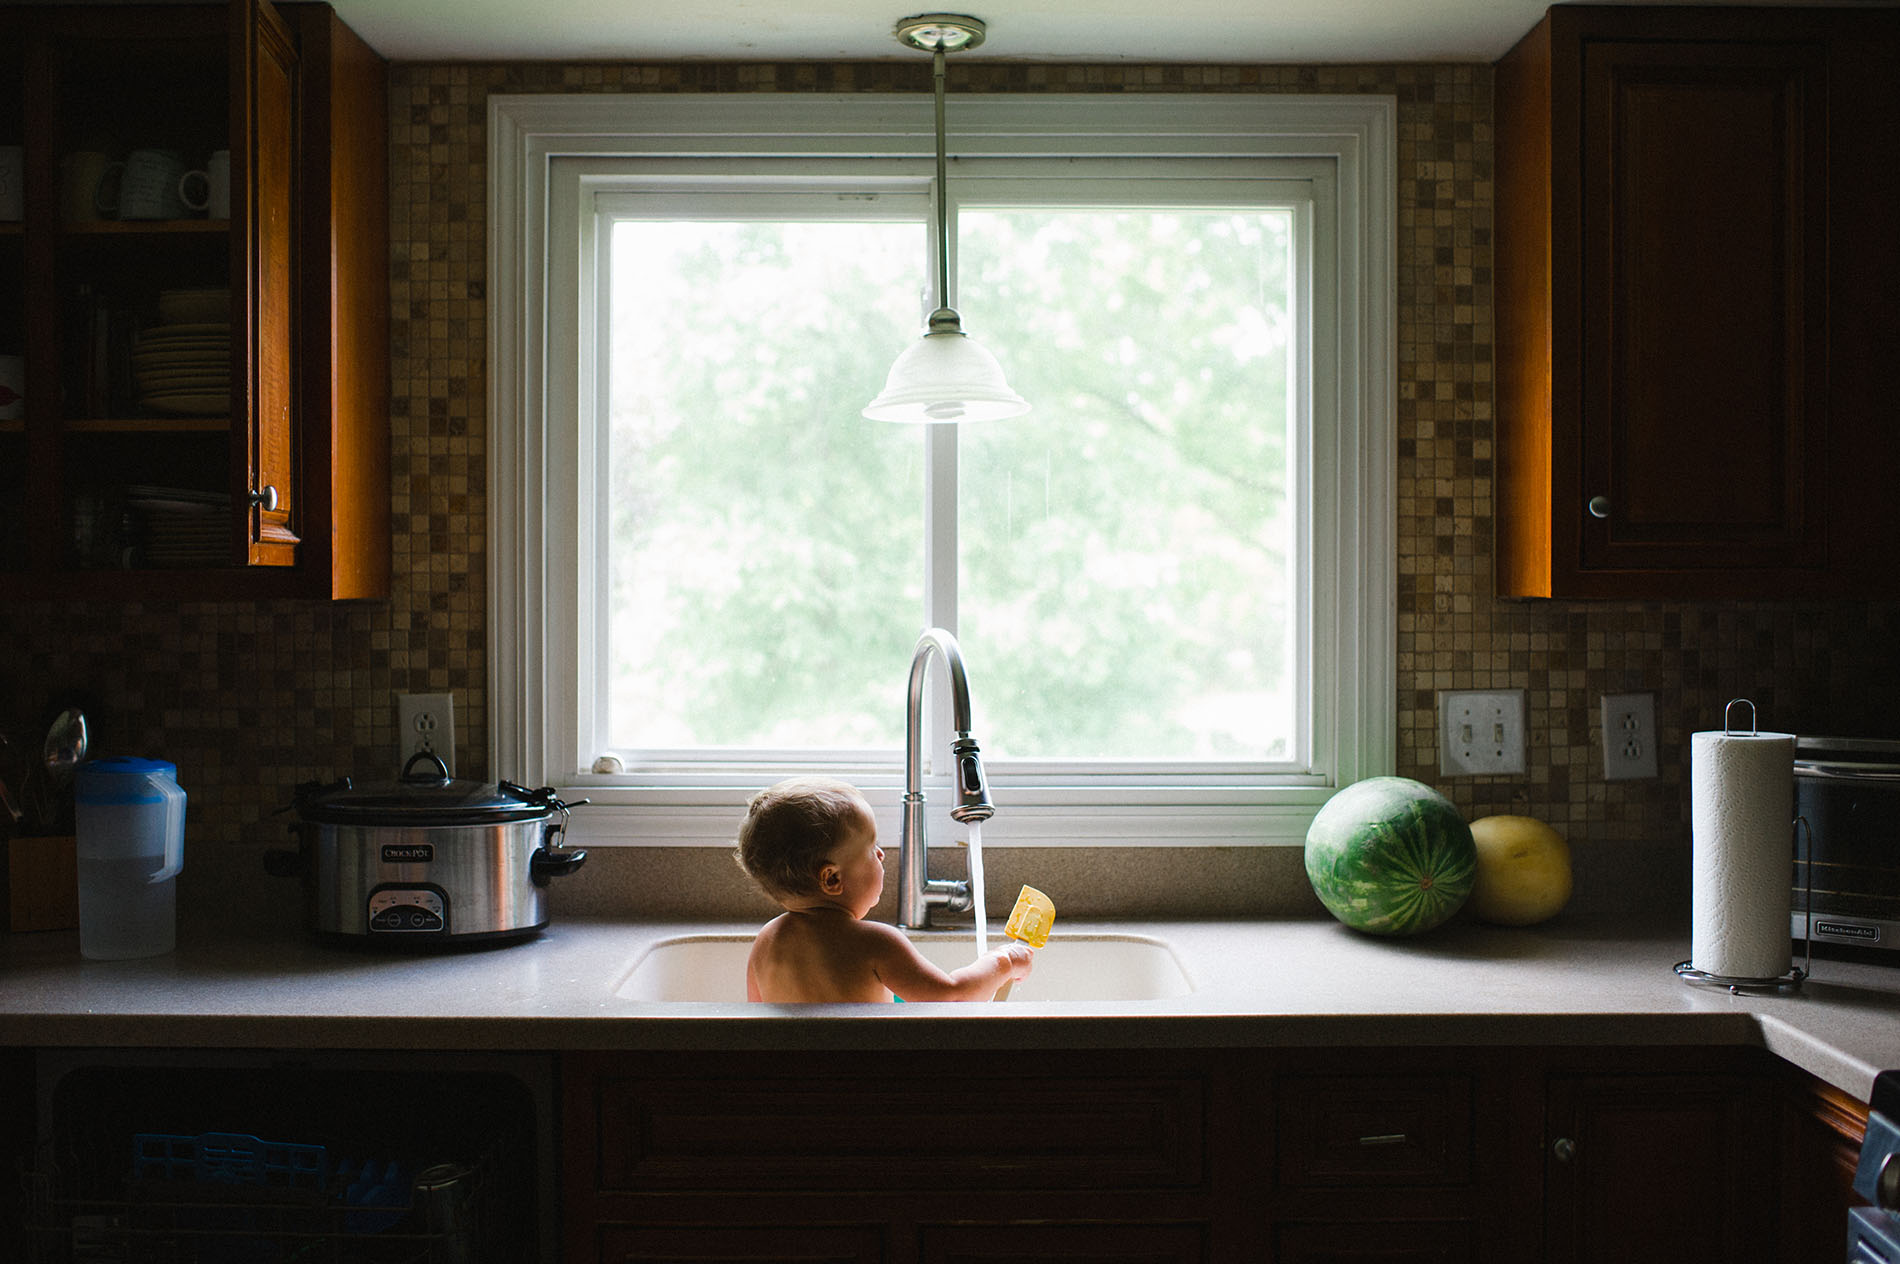 picture of toddler getting a sink bath by Jessica Svoboda